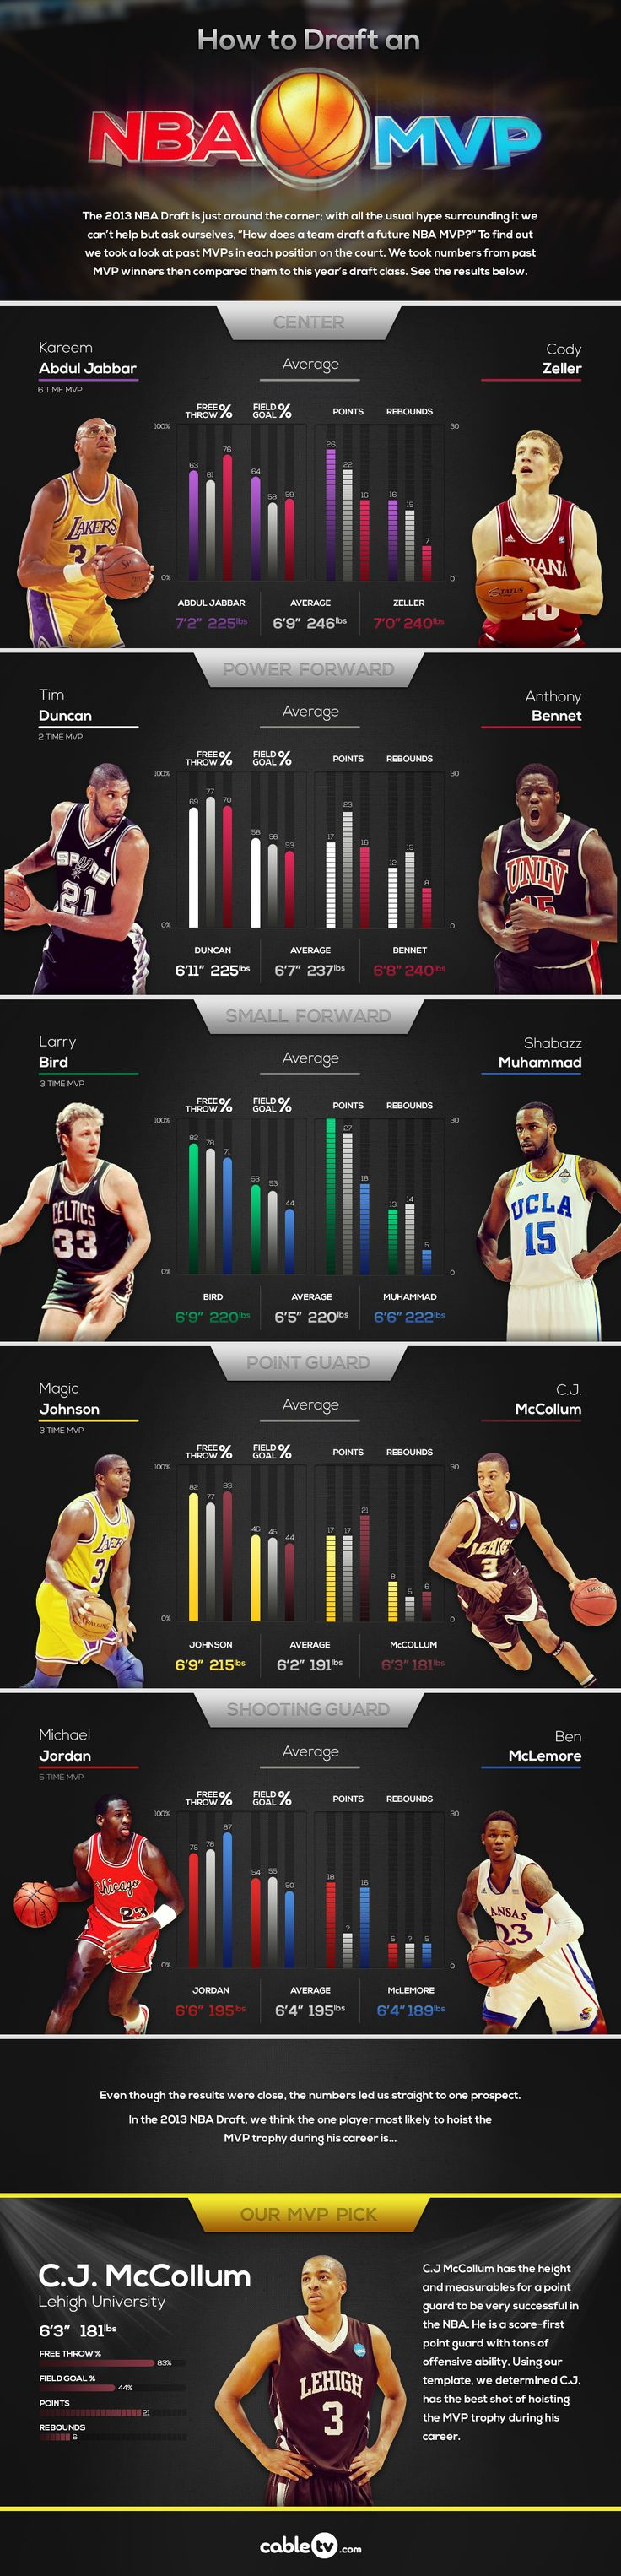 How To Draft an NBA MVP [INFOGRAPHIC]